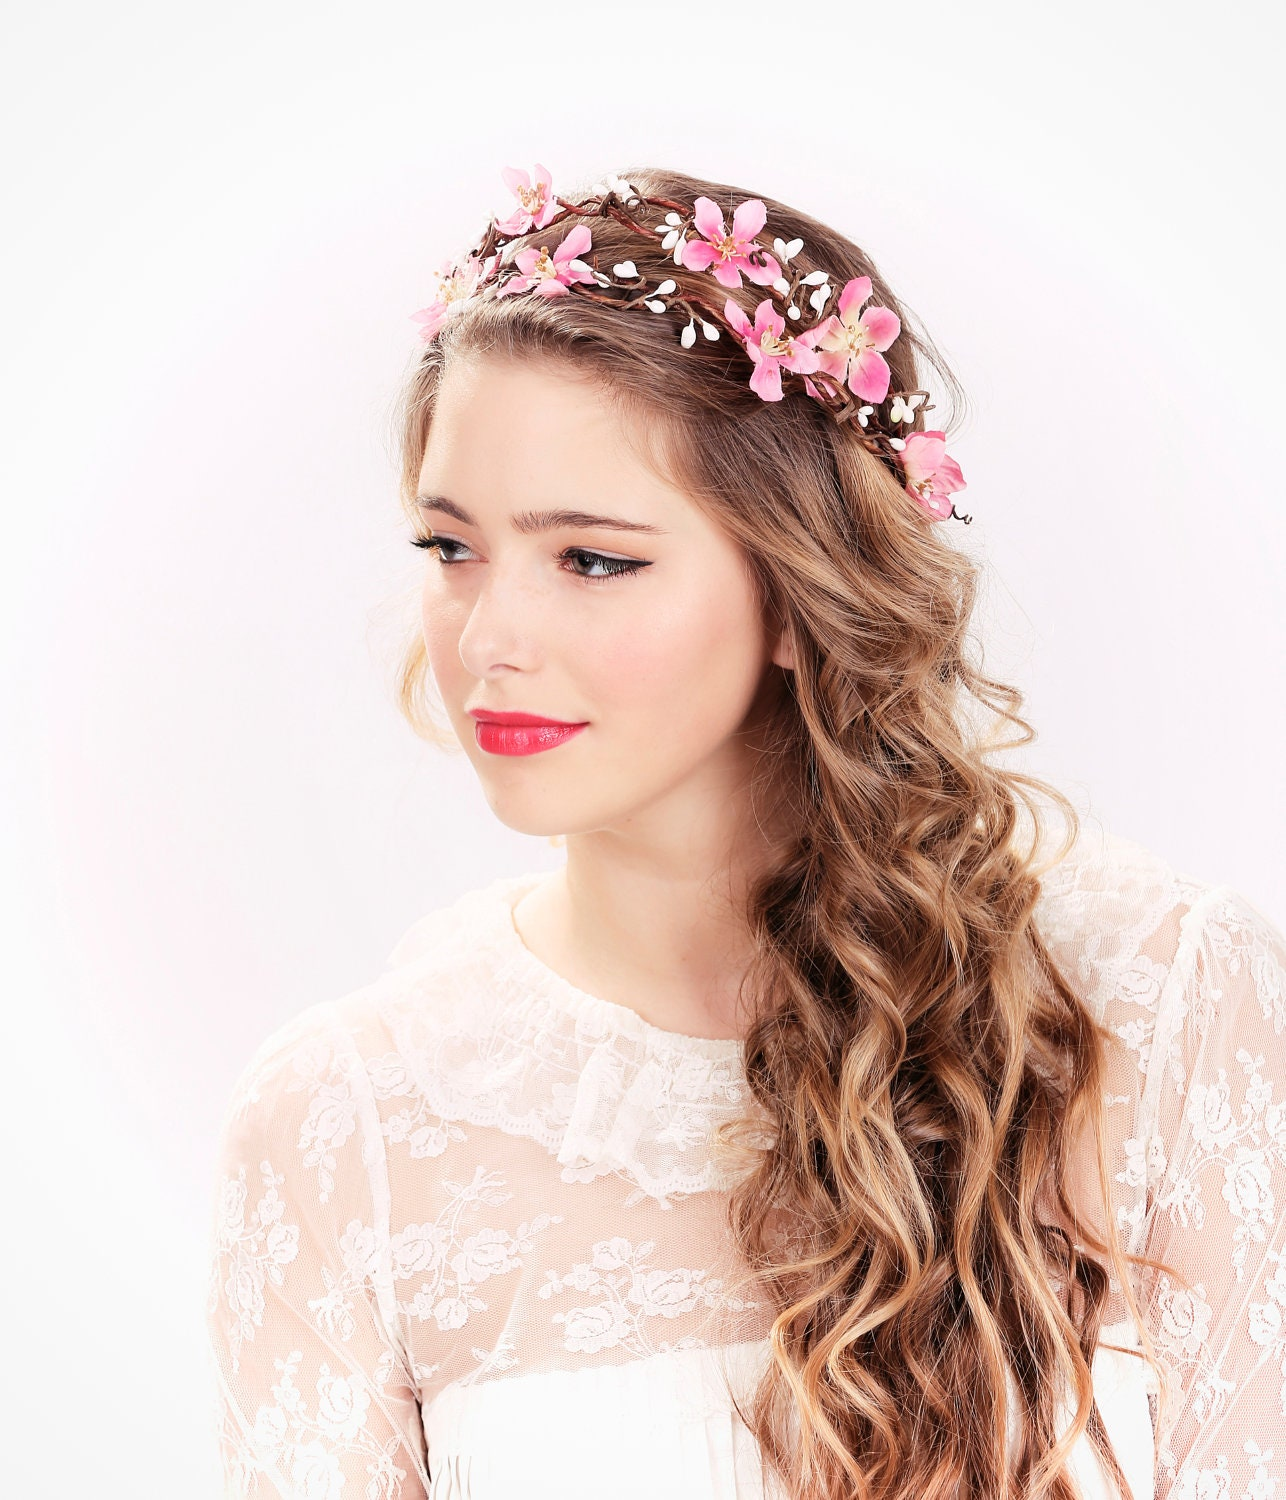 Flower Wedding Headpieces: Pink Flower Crown Wedding Headpiece Flower Crown Bridal